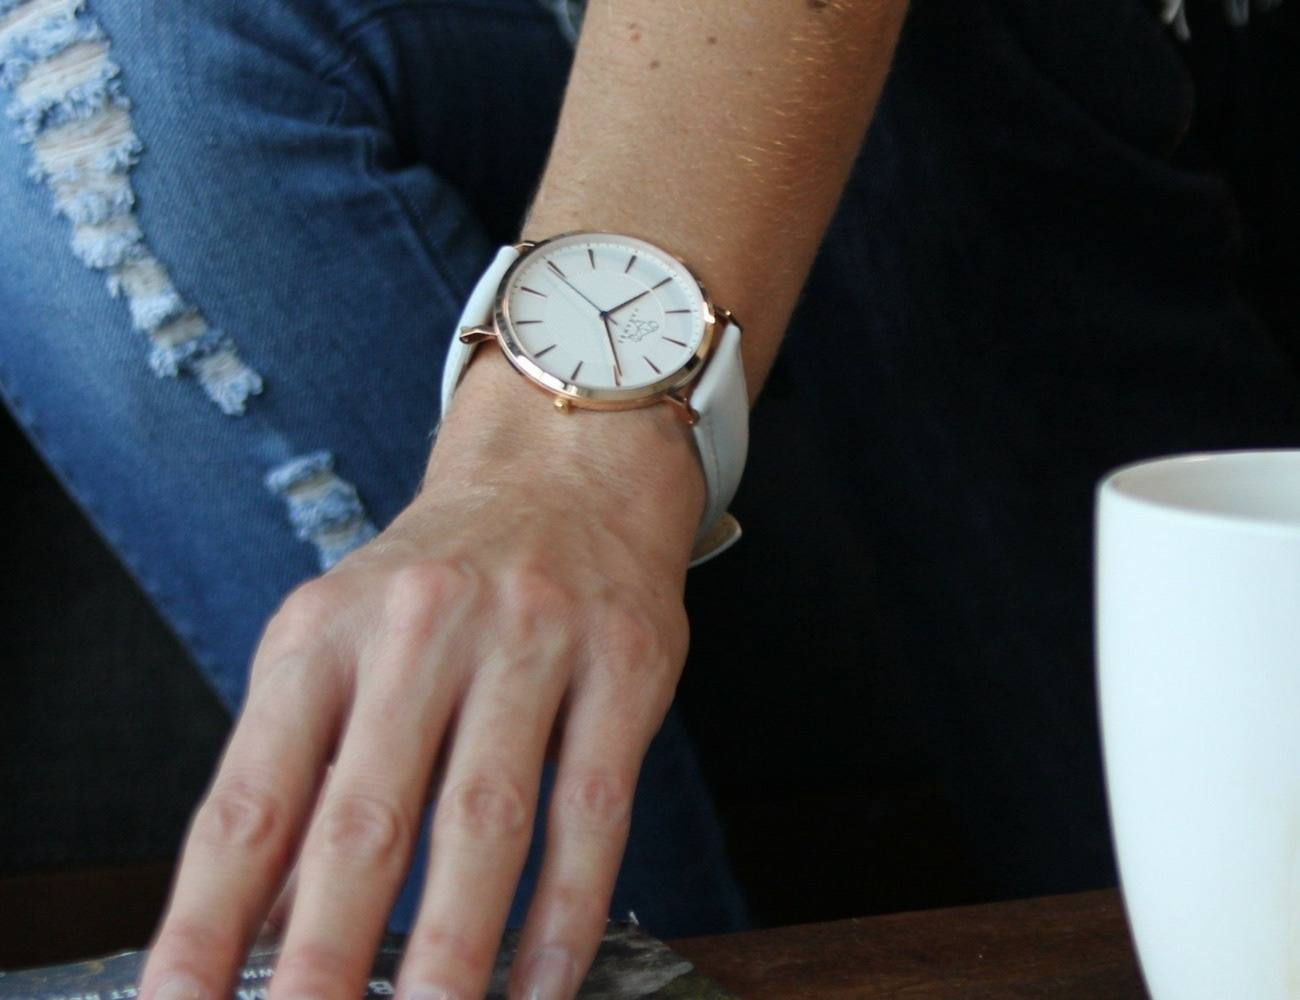 Harambe Swiss Movement Watch – The Value of Our Time